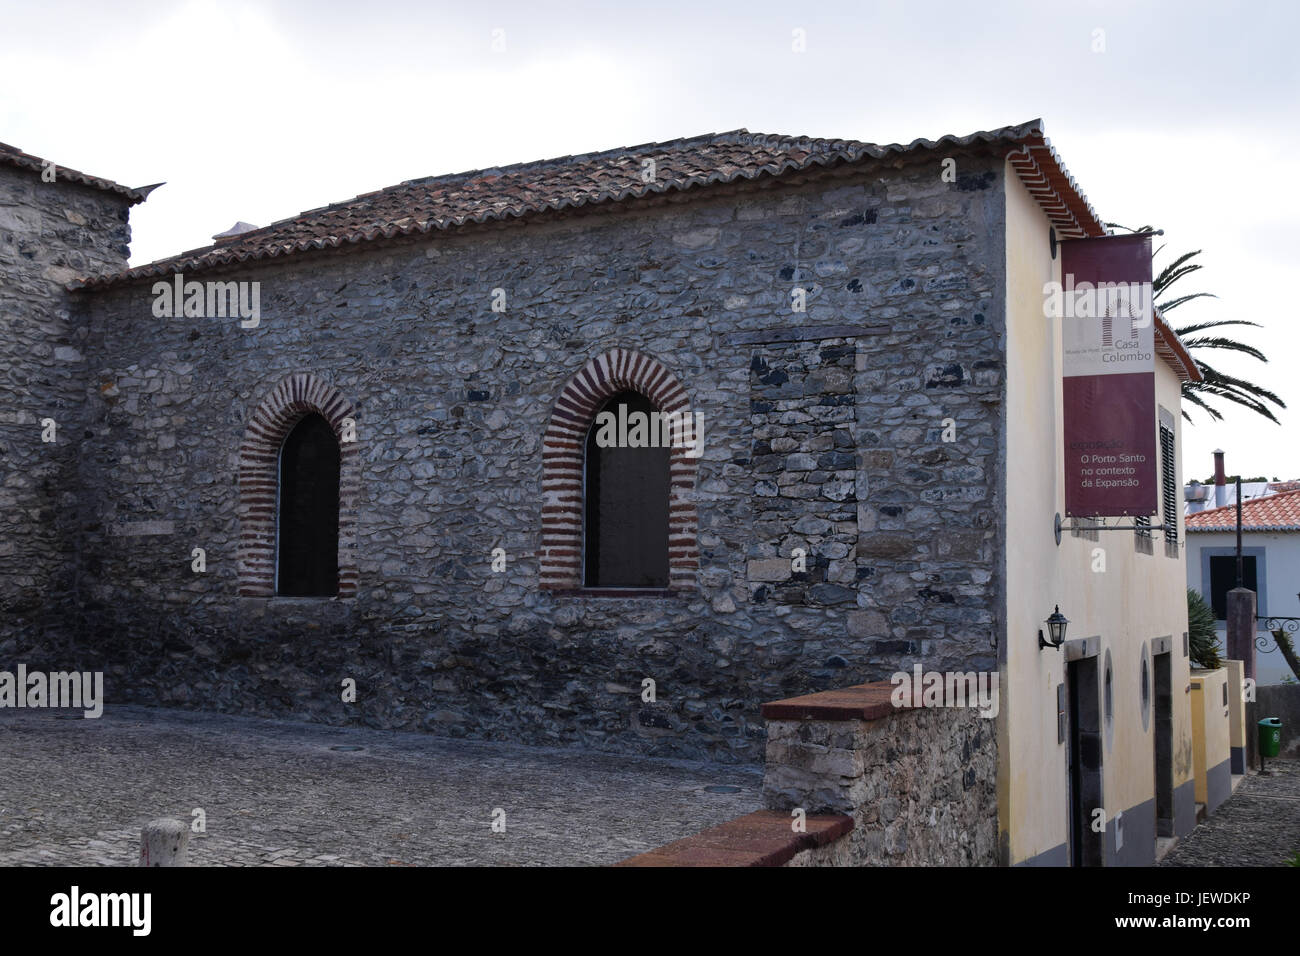 Christopher Columbus museum in the main town of Vila Baleira, Porto Santo Island, Madeira, Portugal - Stock Image